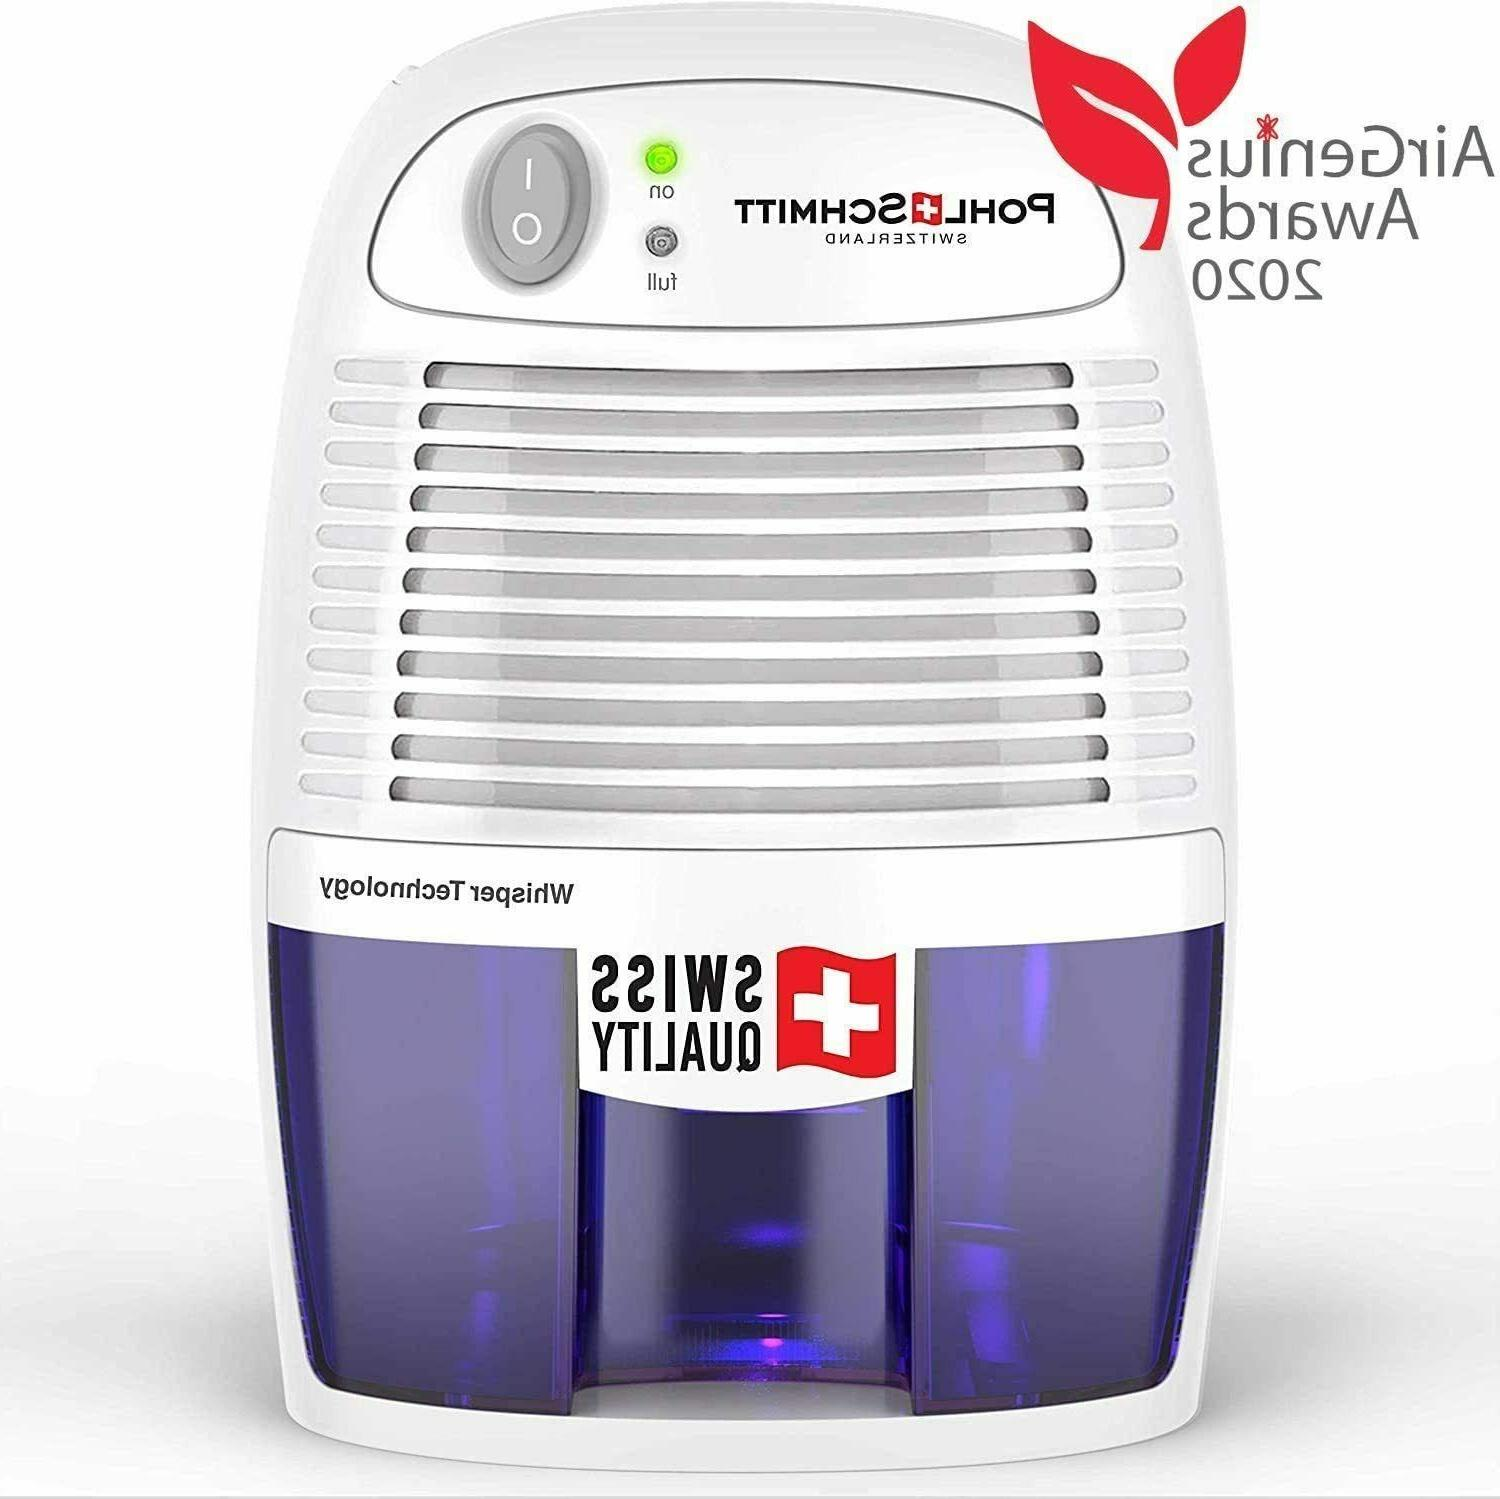 Portable Mini Dehumidifier Home Removing Air Bathroom